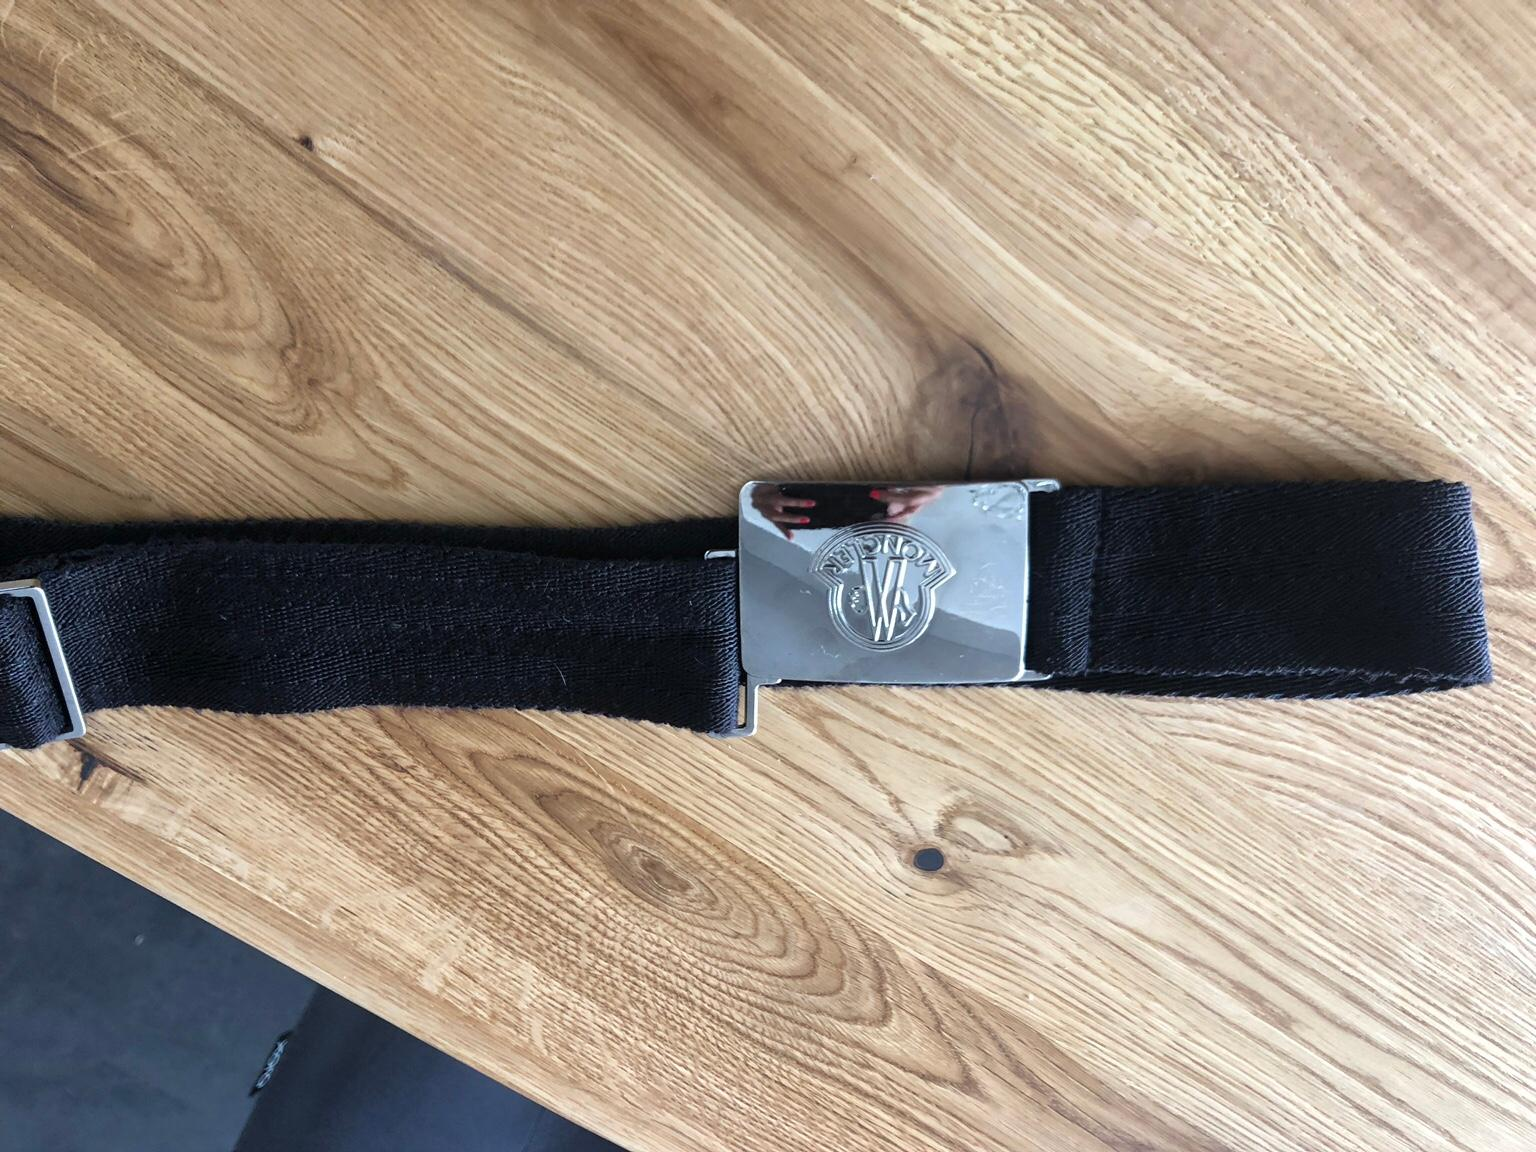 Moncler Nantisfur gr.3 in 4812 Pinsdorf for €500.00 for sale